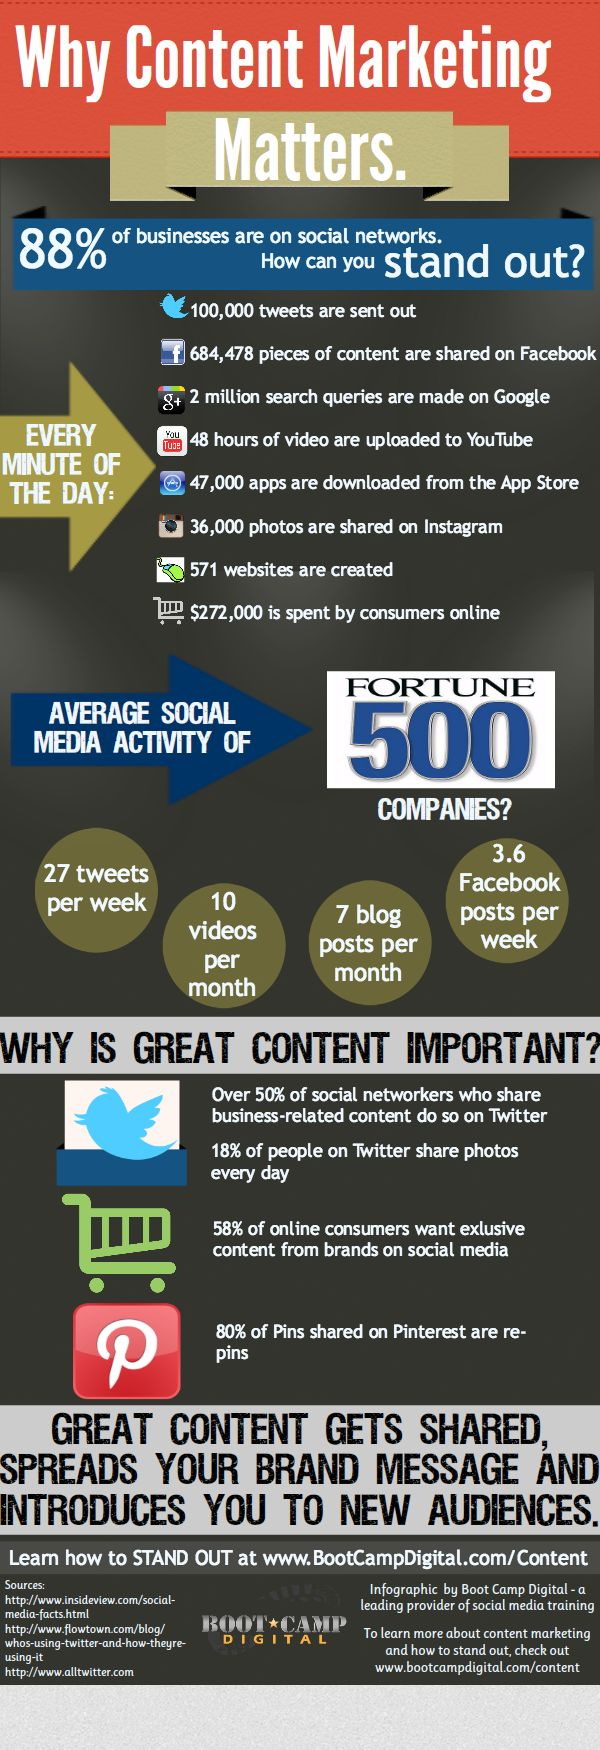 Why Content Marketing Matters #b2b #marketing #infographic